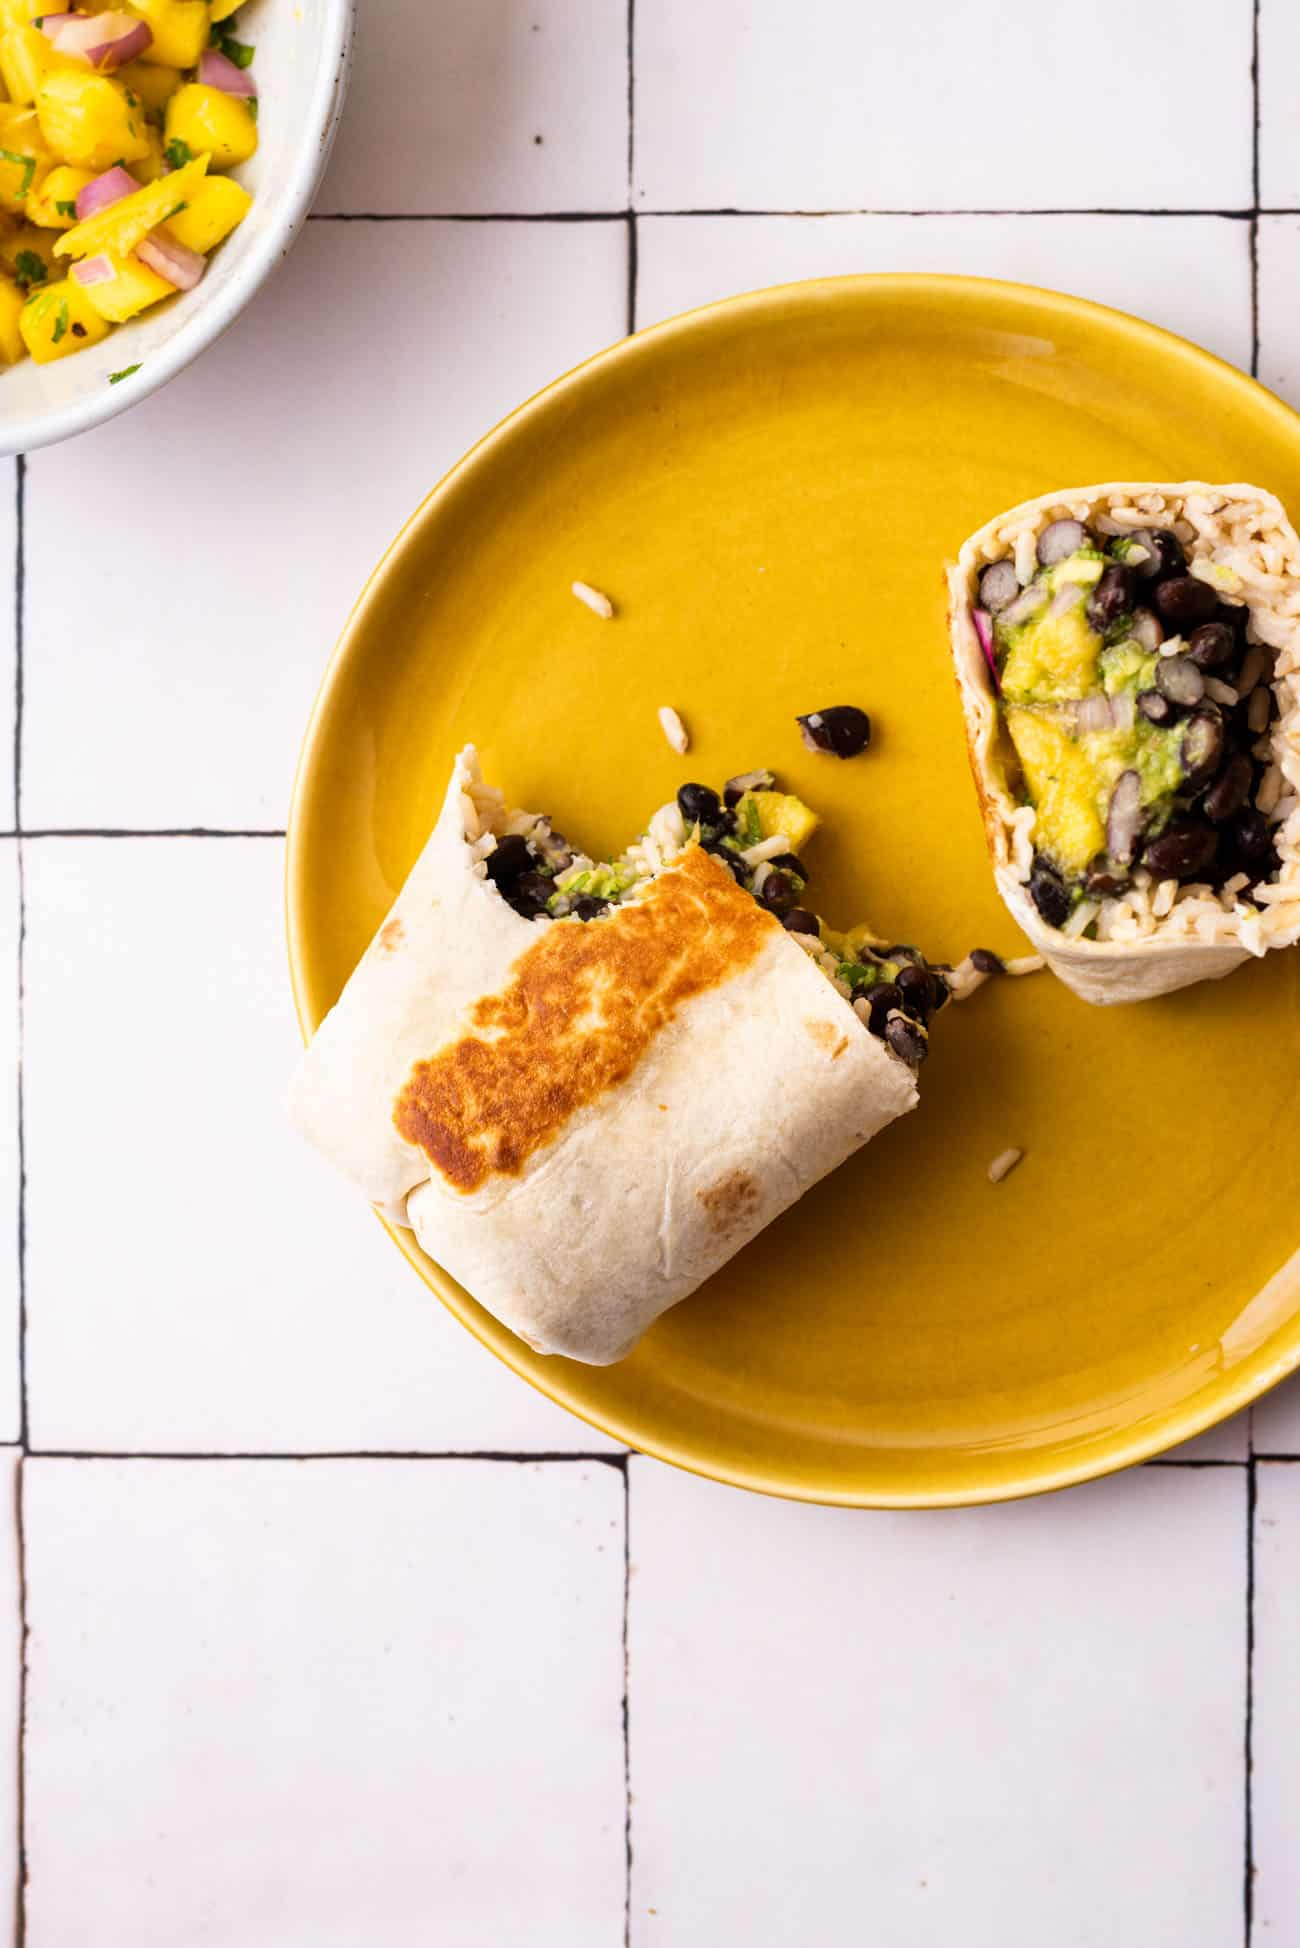 Vegan black bean burrito with mango salsa, cut in half, on a yellow plate on a white-tiled table